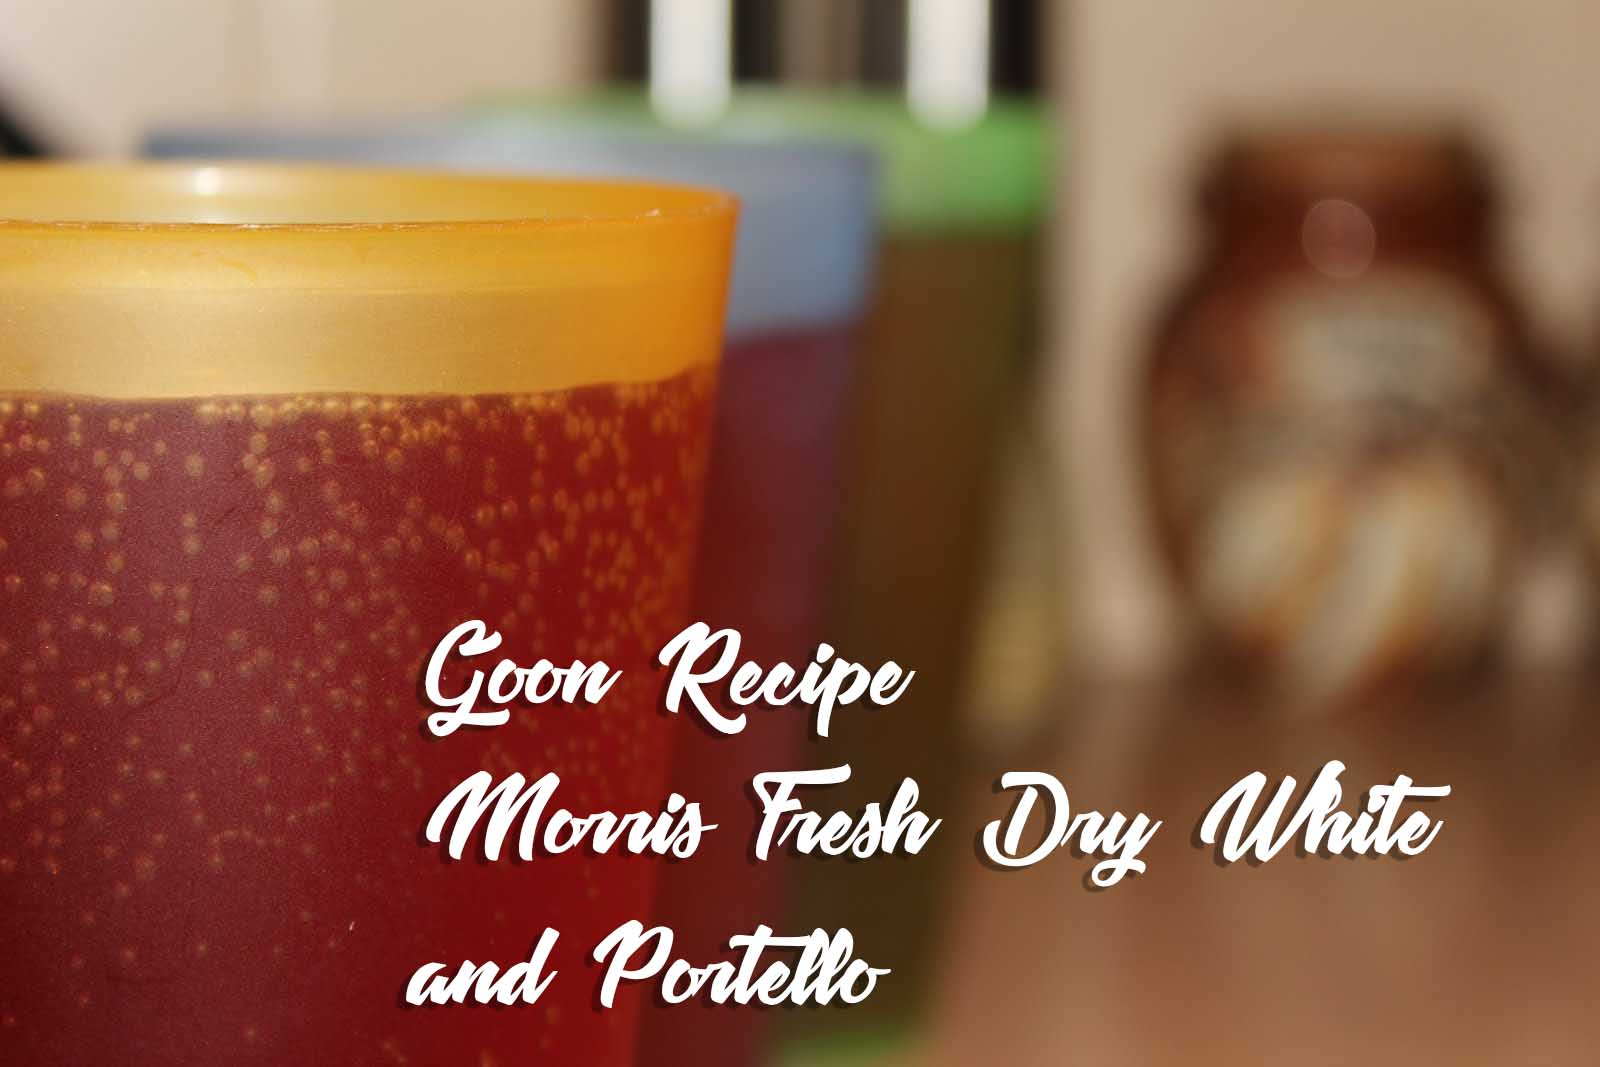 Morris_Fresh_Dry_White_and_Portello_Goon_Recipe